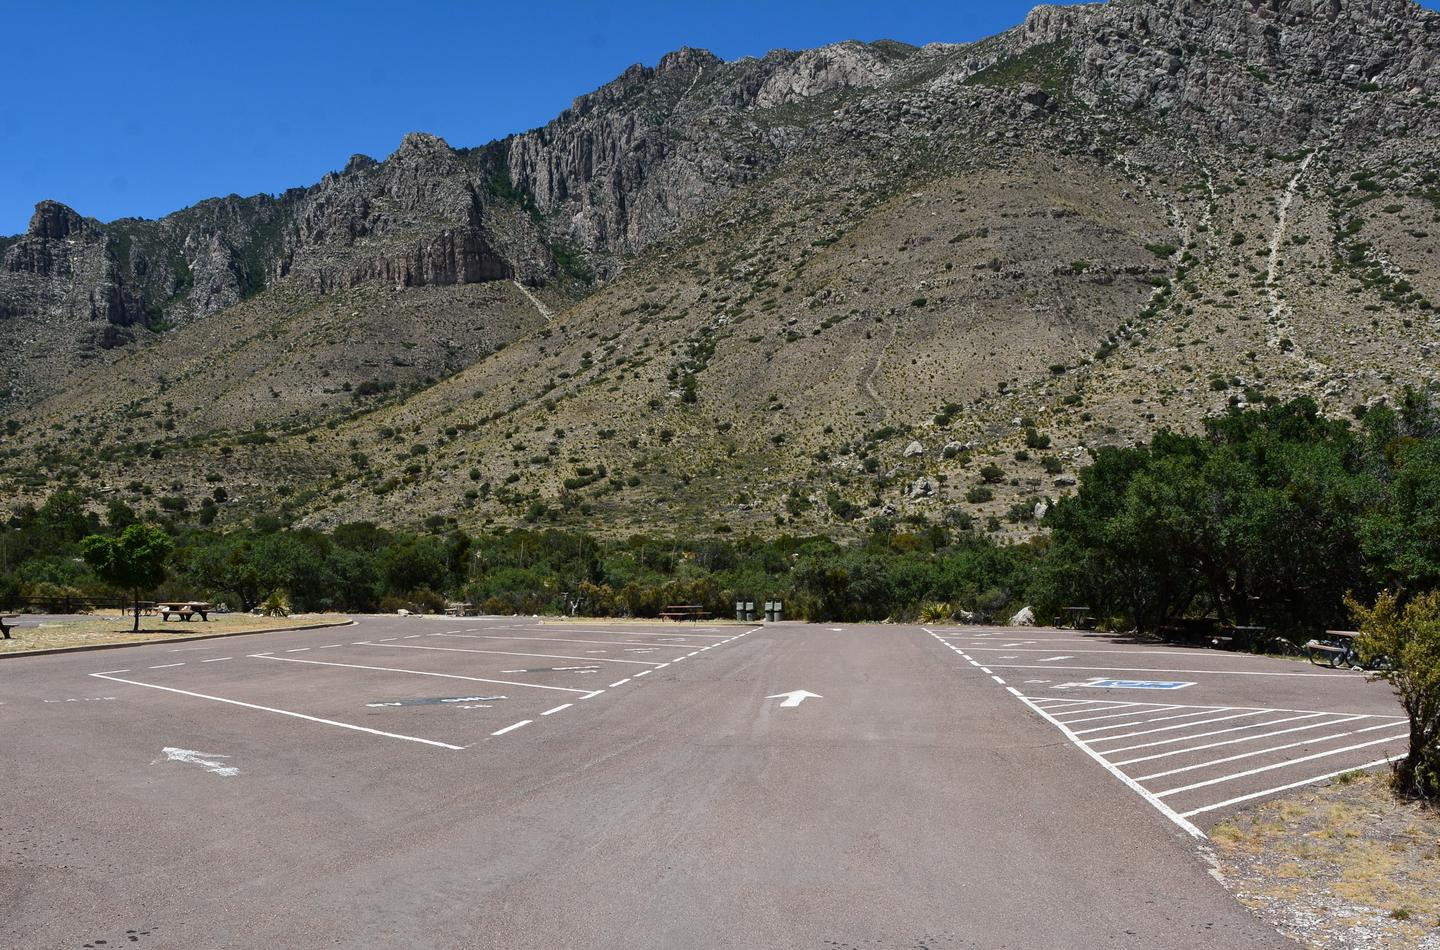 A view of RV campground parking area with sites 21-30 shown.  Site 25 is located along the right side of travel lane.  Mountain views in the background.A view of RV campground parking area with sites 21-30 shown.  Site 23 is located along the right side of travel lane, it is an end site and has only one RV site adjoining it.